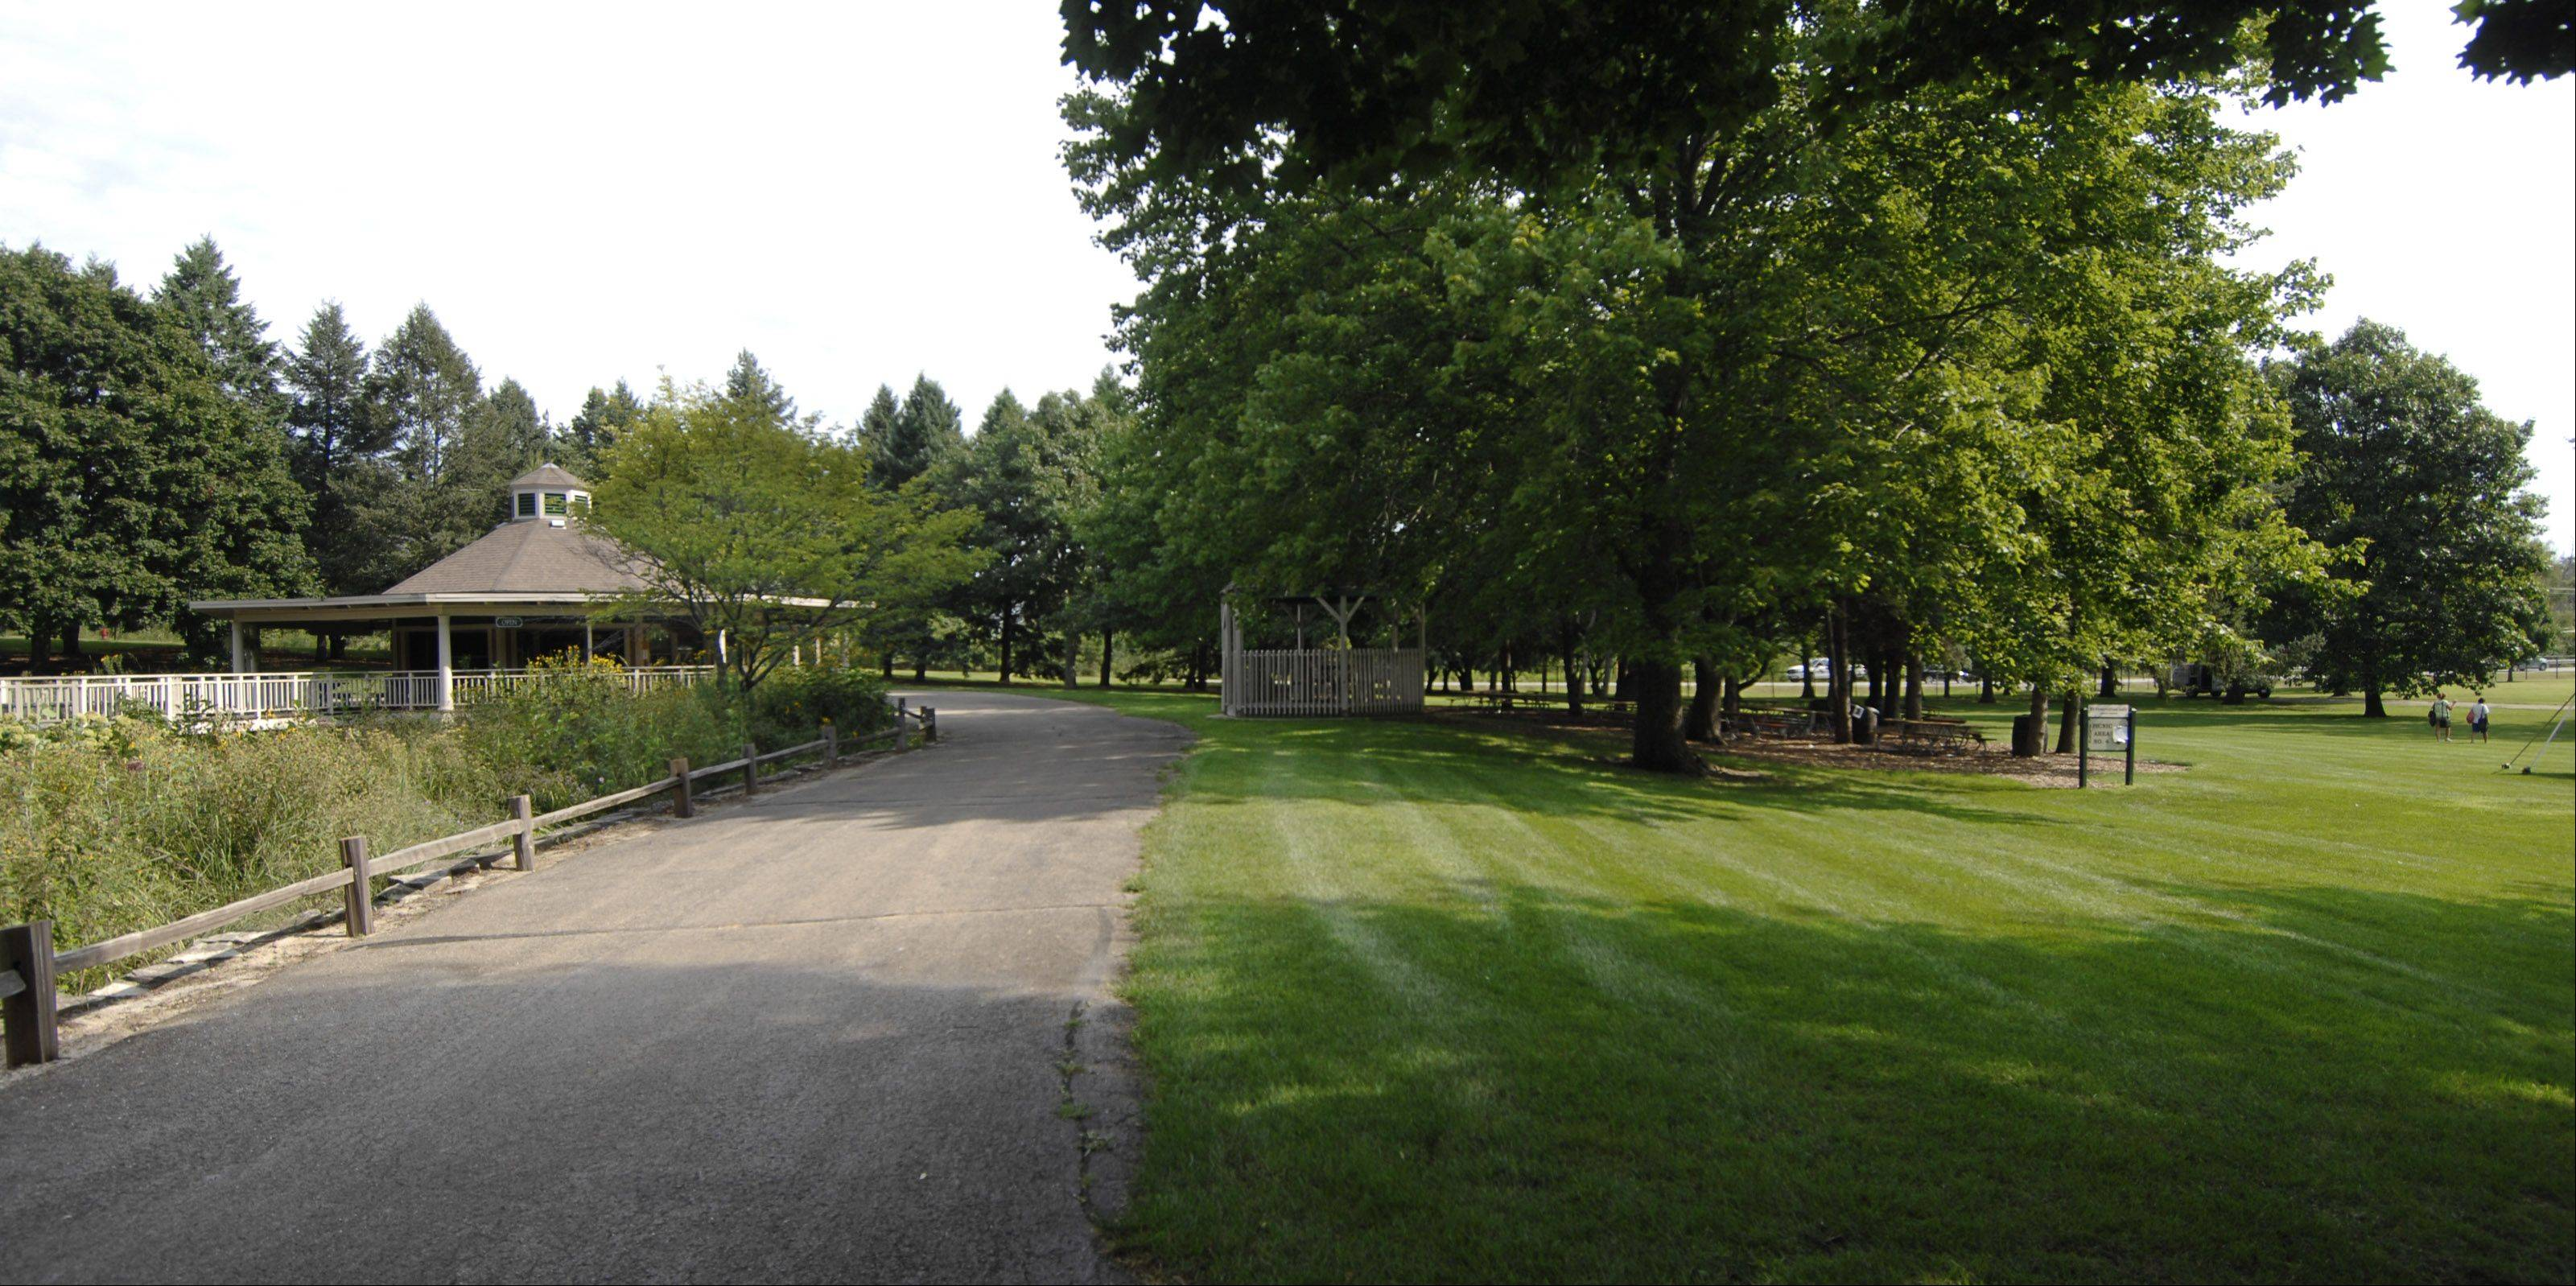 A 2,500-square-foot performance shelter and restrooms will be added to this grassy area between two picnic spots at Blackberry Farm in Aurora as part of the first phase of improvements at the farm. Fox Valley Park District trustees approved a $1.5 million contract for the renovations Aug. 8.